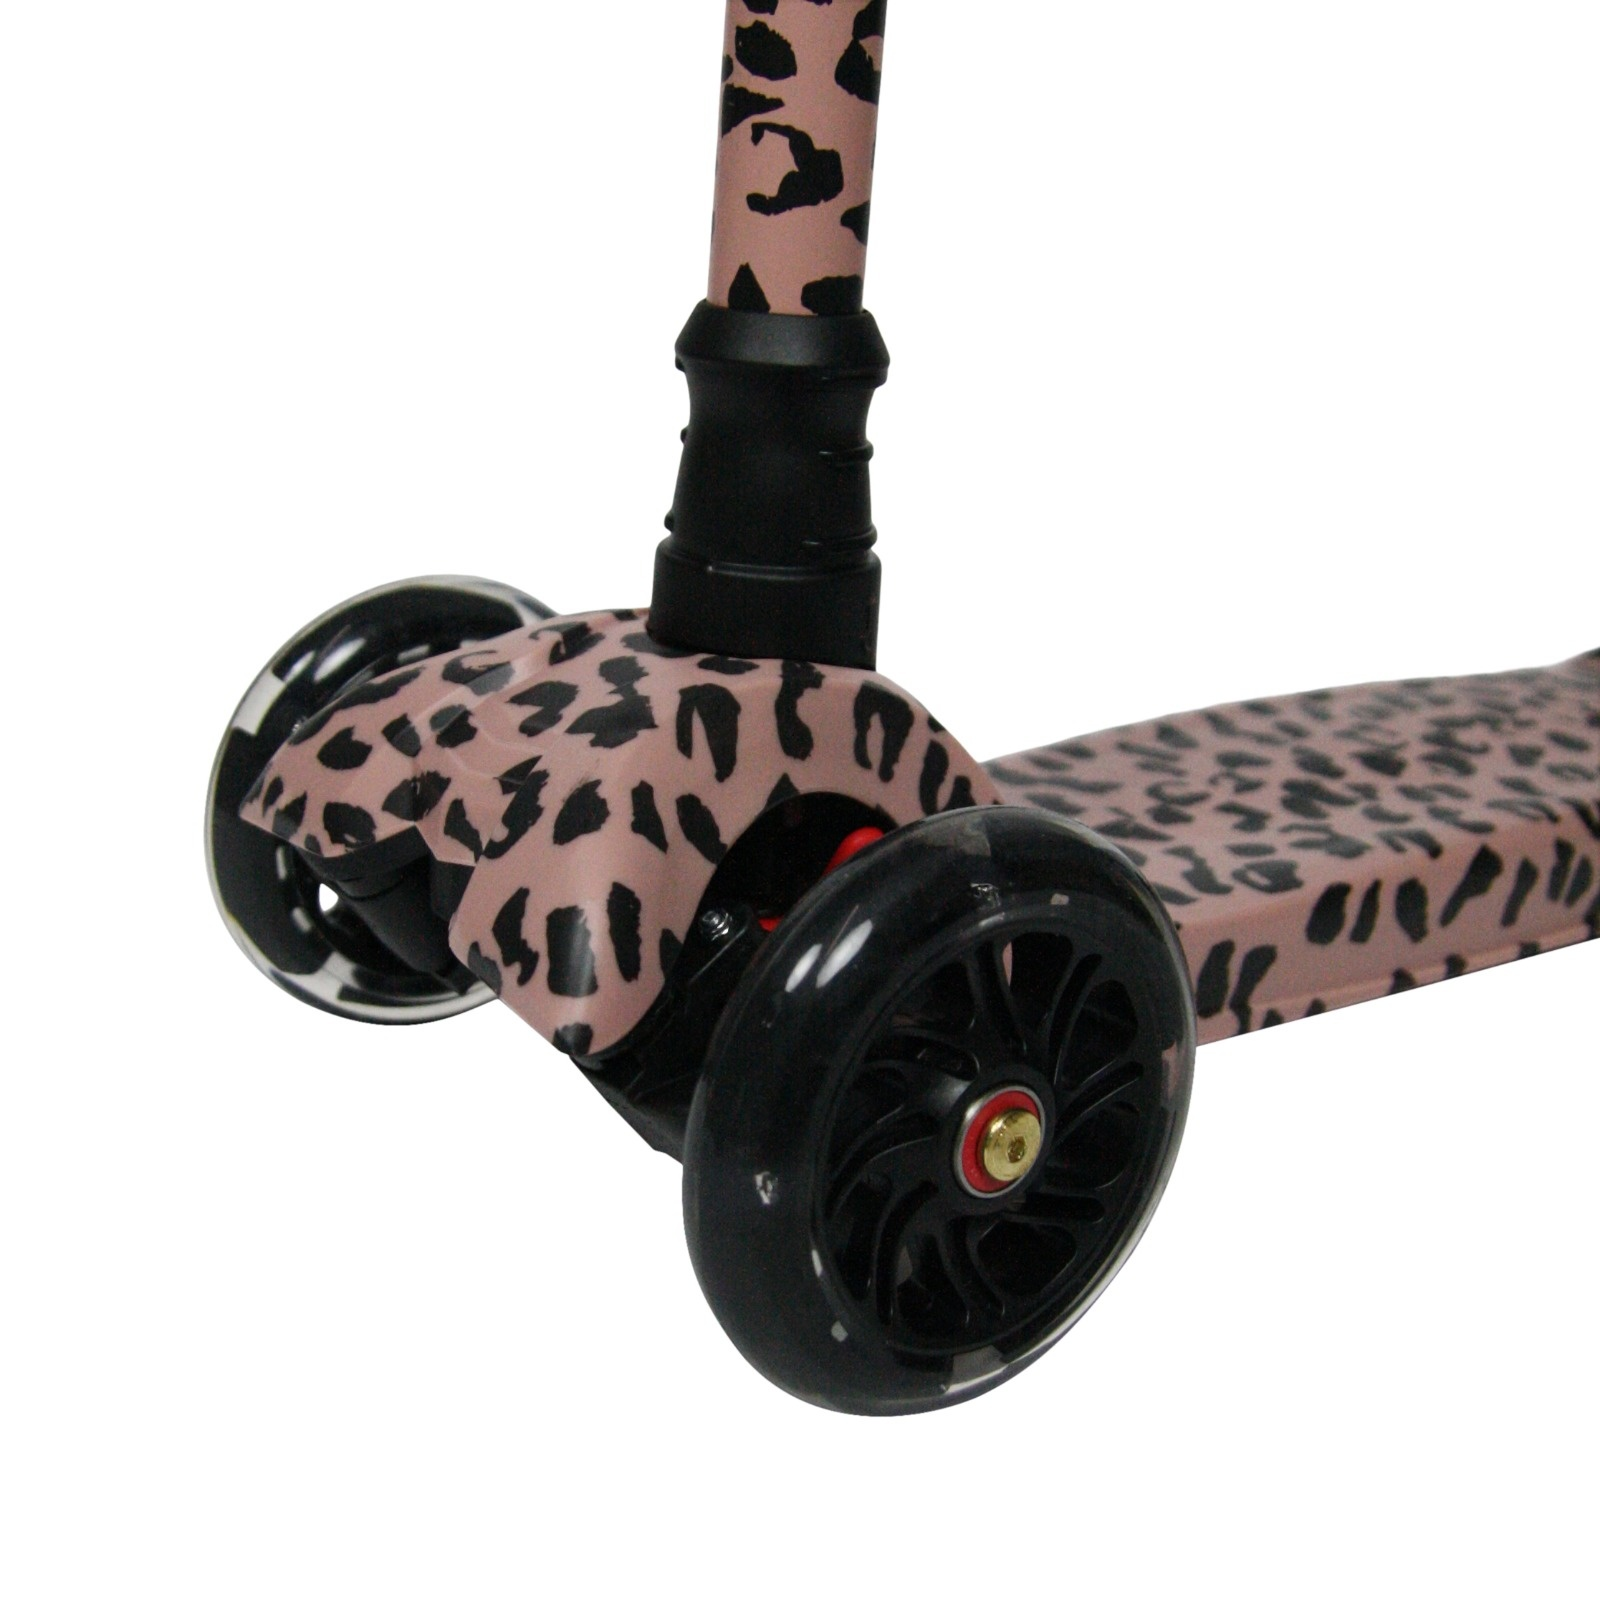 VanPauline KIDS SCOOTER WITH LEOPARD PRINT | CHILDREN'S SCOOTER FOR GIRL | TOYS